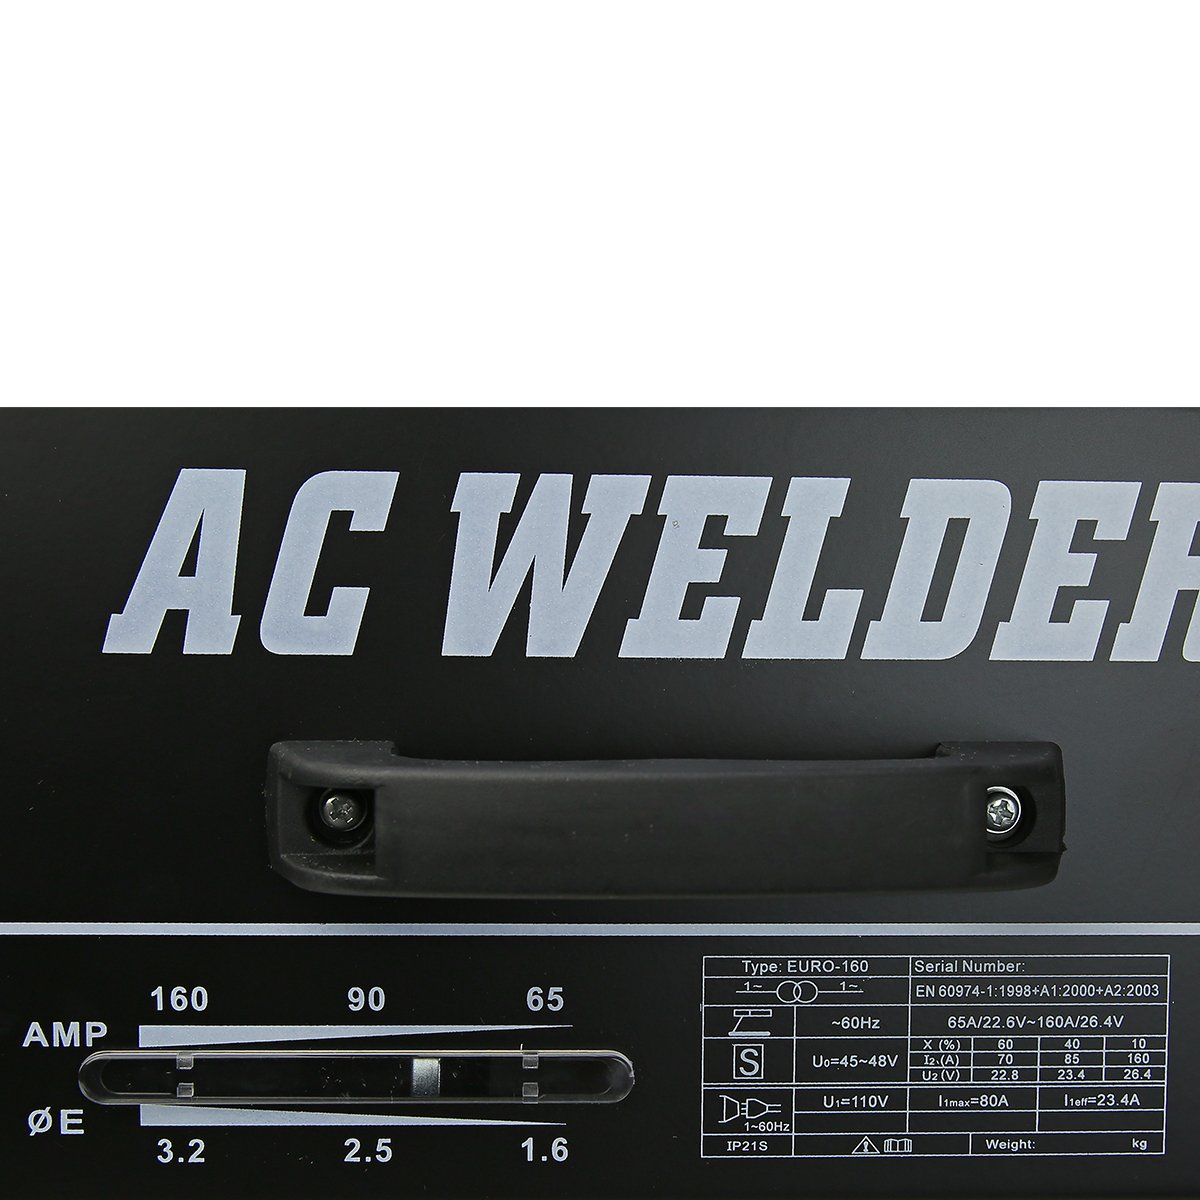 XtremepowerUS 160 AMP Arc Welder Welding Machine With Accessories by XtremepowerUS (Image #3)